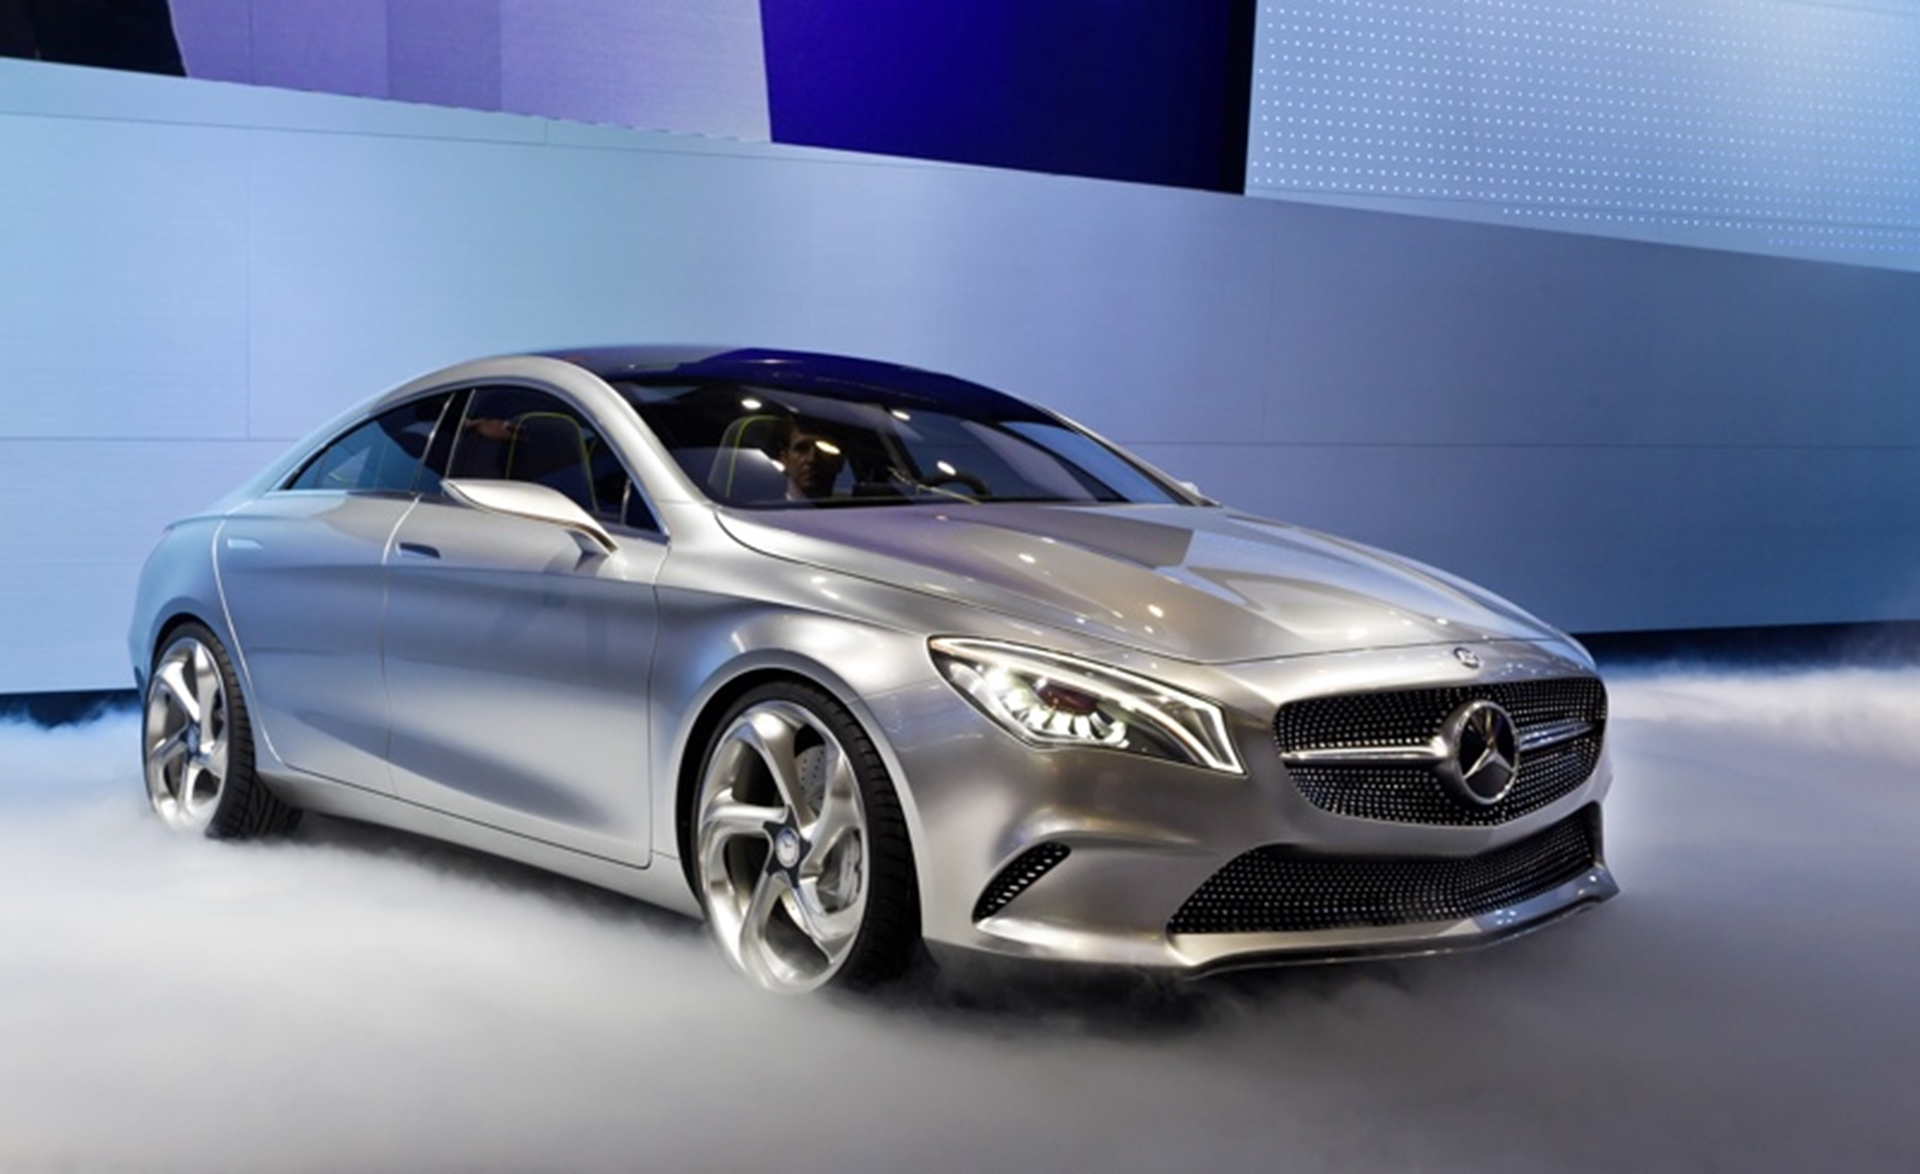 World Premiere of the Mercedes-Benz Concept Style Coupe